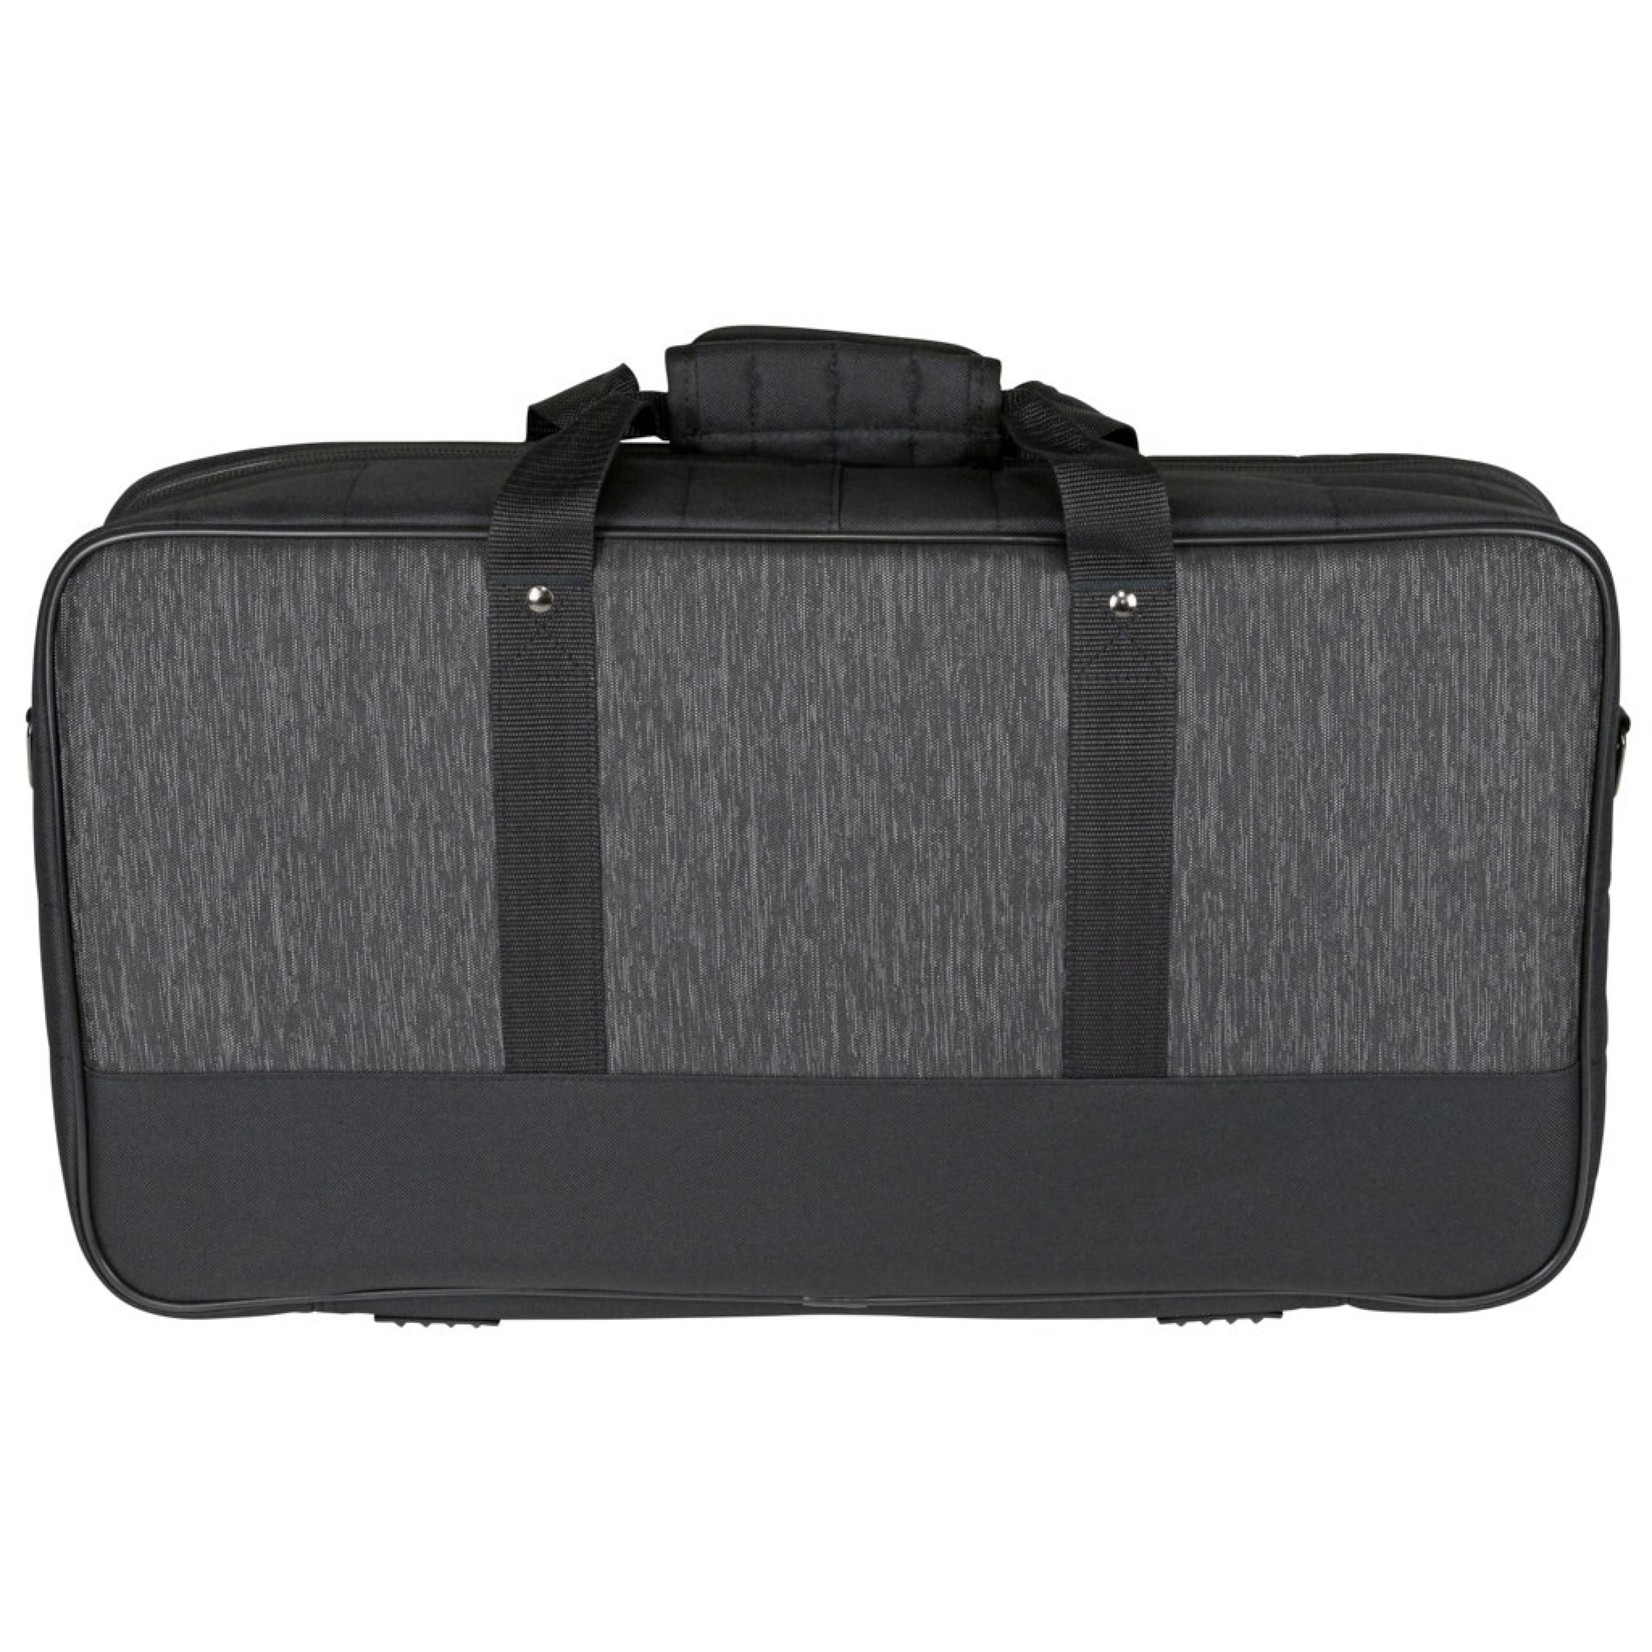 "Kaces Kaces Luxe Keyboard & Gear Bag, 25-Note, Large, Heathered Charcoal/Black (22.5"" x 12"" x 4""), KB2512"